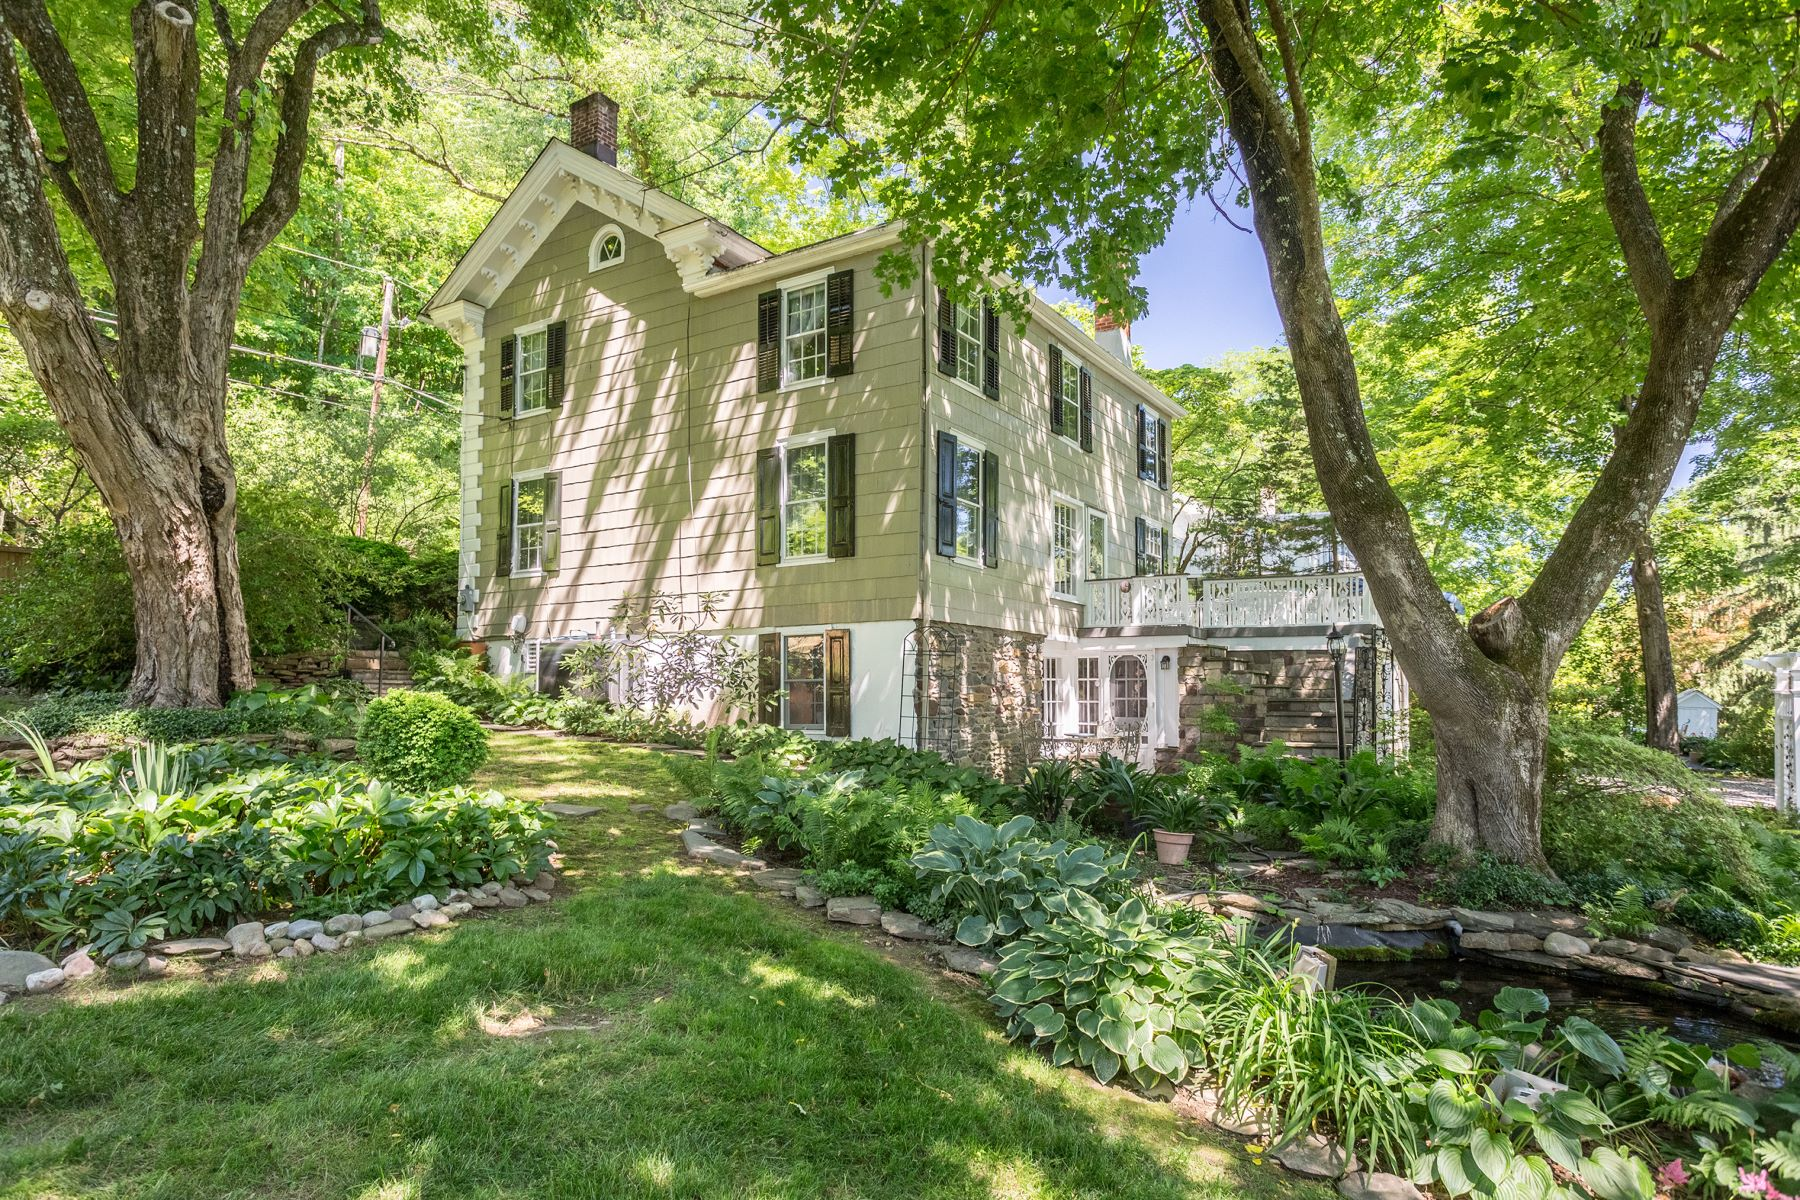 Single Family Homes for Sale at 100 RIVER RD Pipersville, Pennsylvania 18947 United States